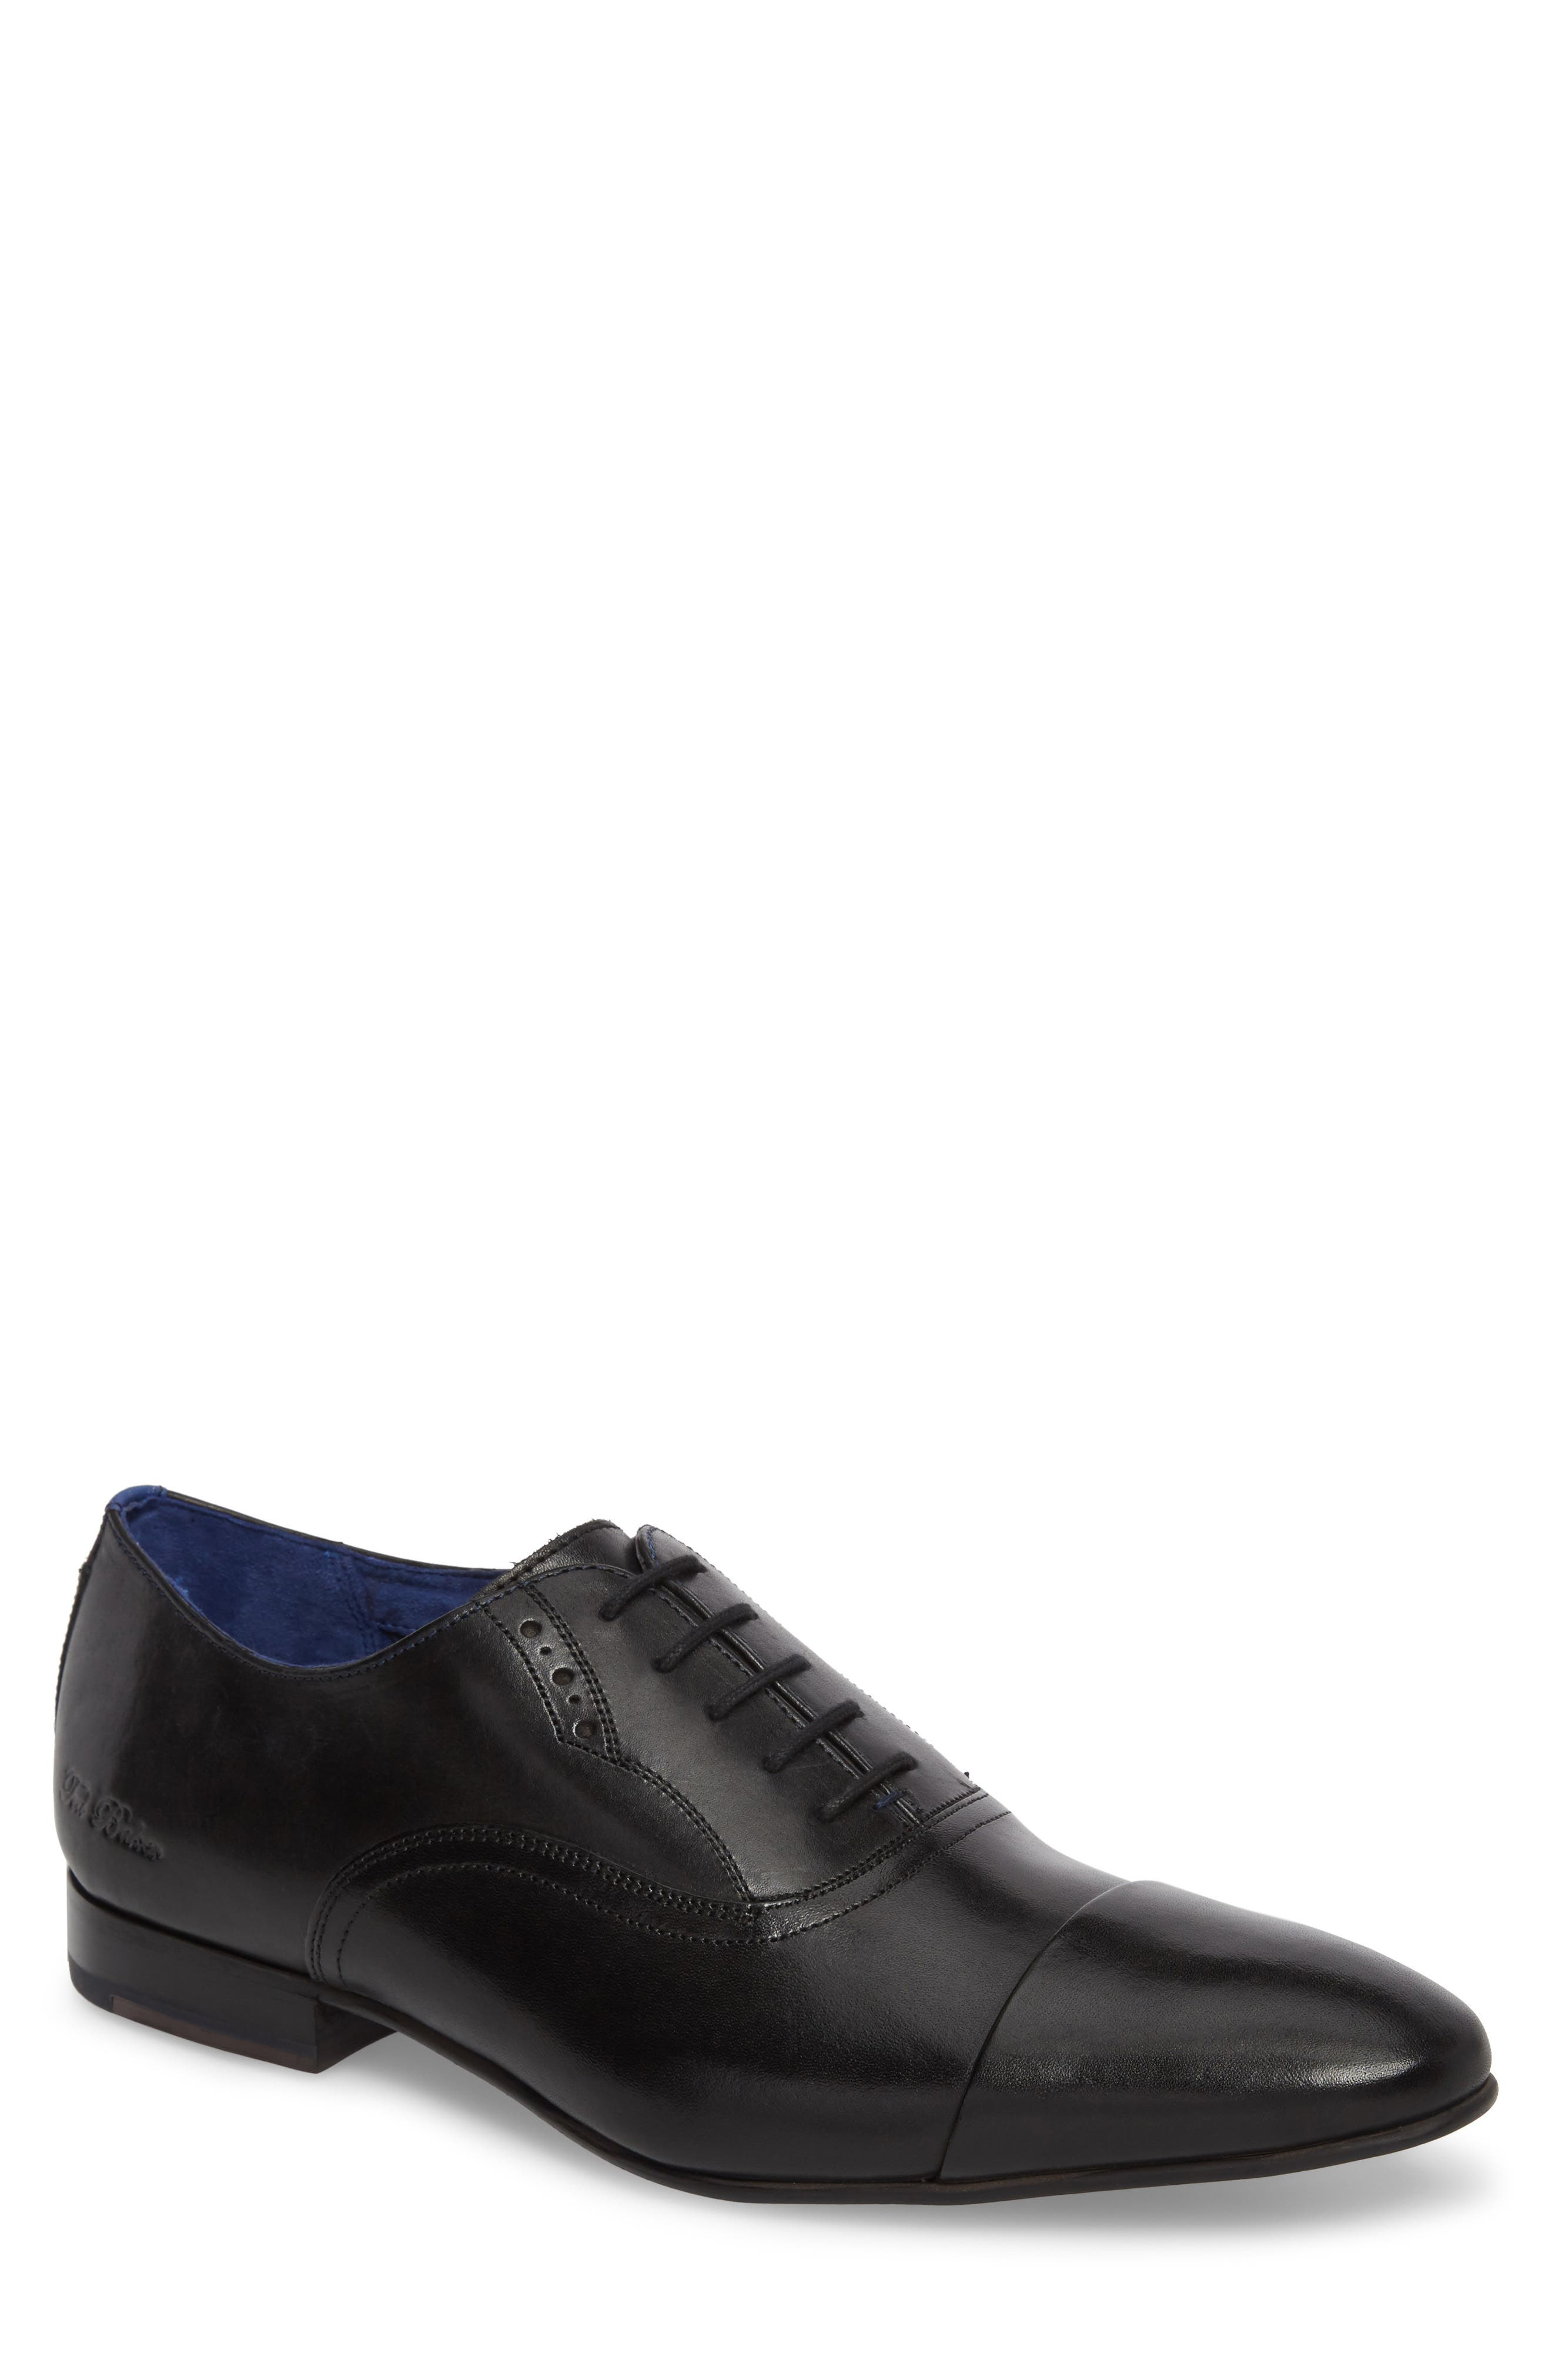 Murain Cap Toe Oxford,                         Main,                         color,